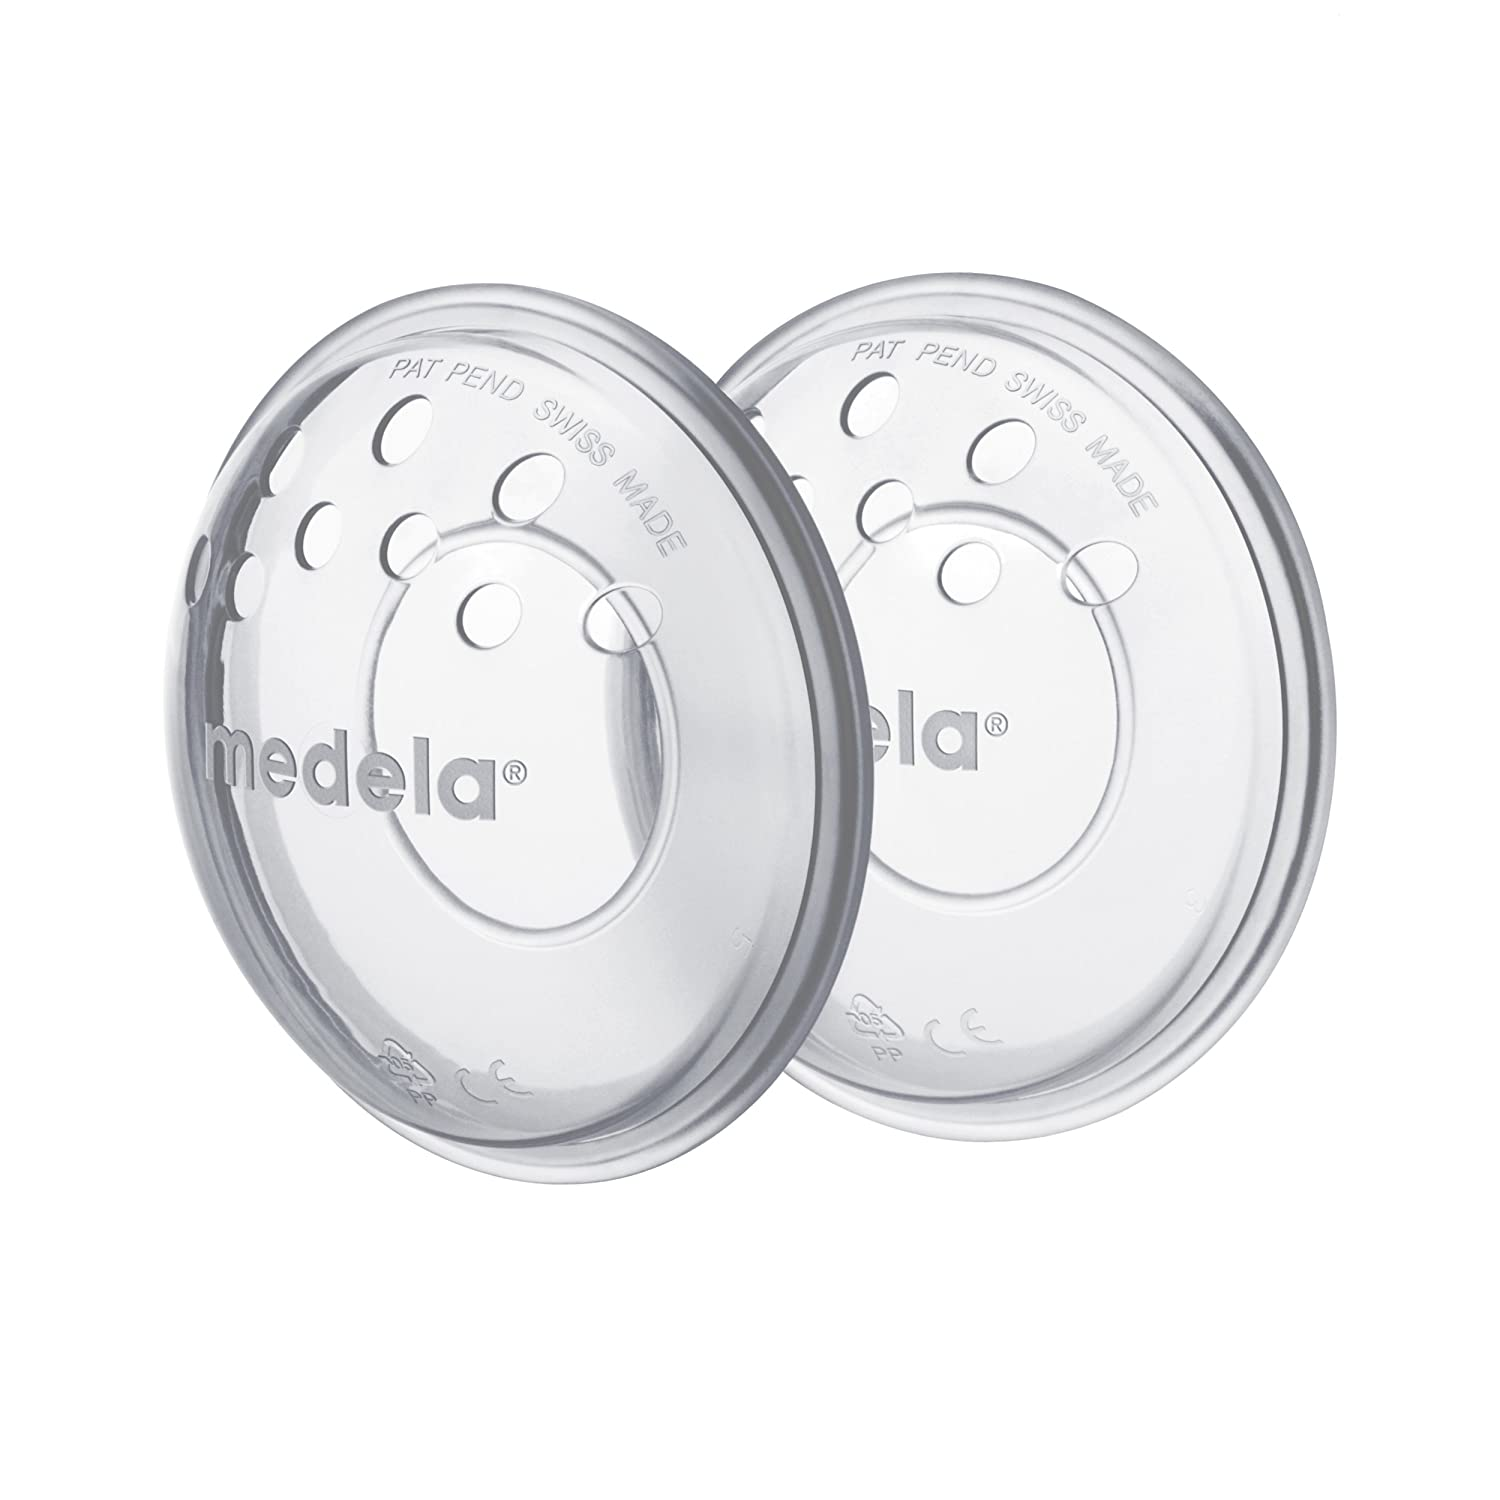 Medela SoftShells Breast Shells for Sort Nipples for Pumping or Breastfeeding